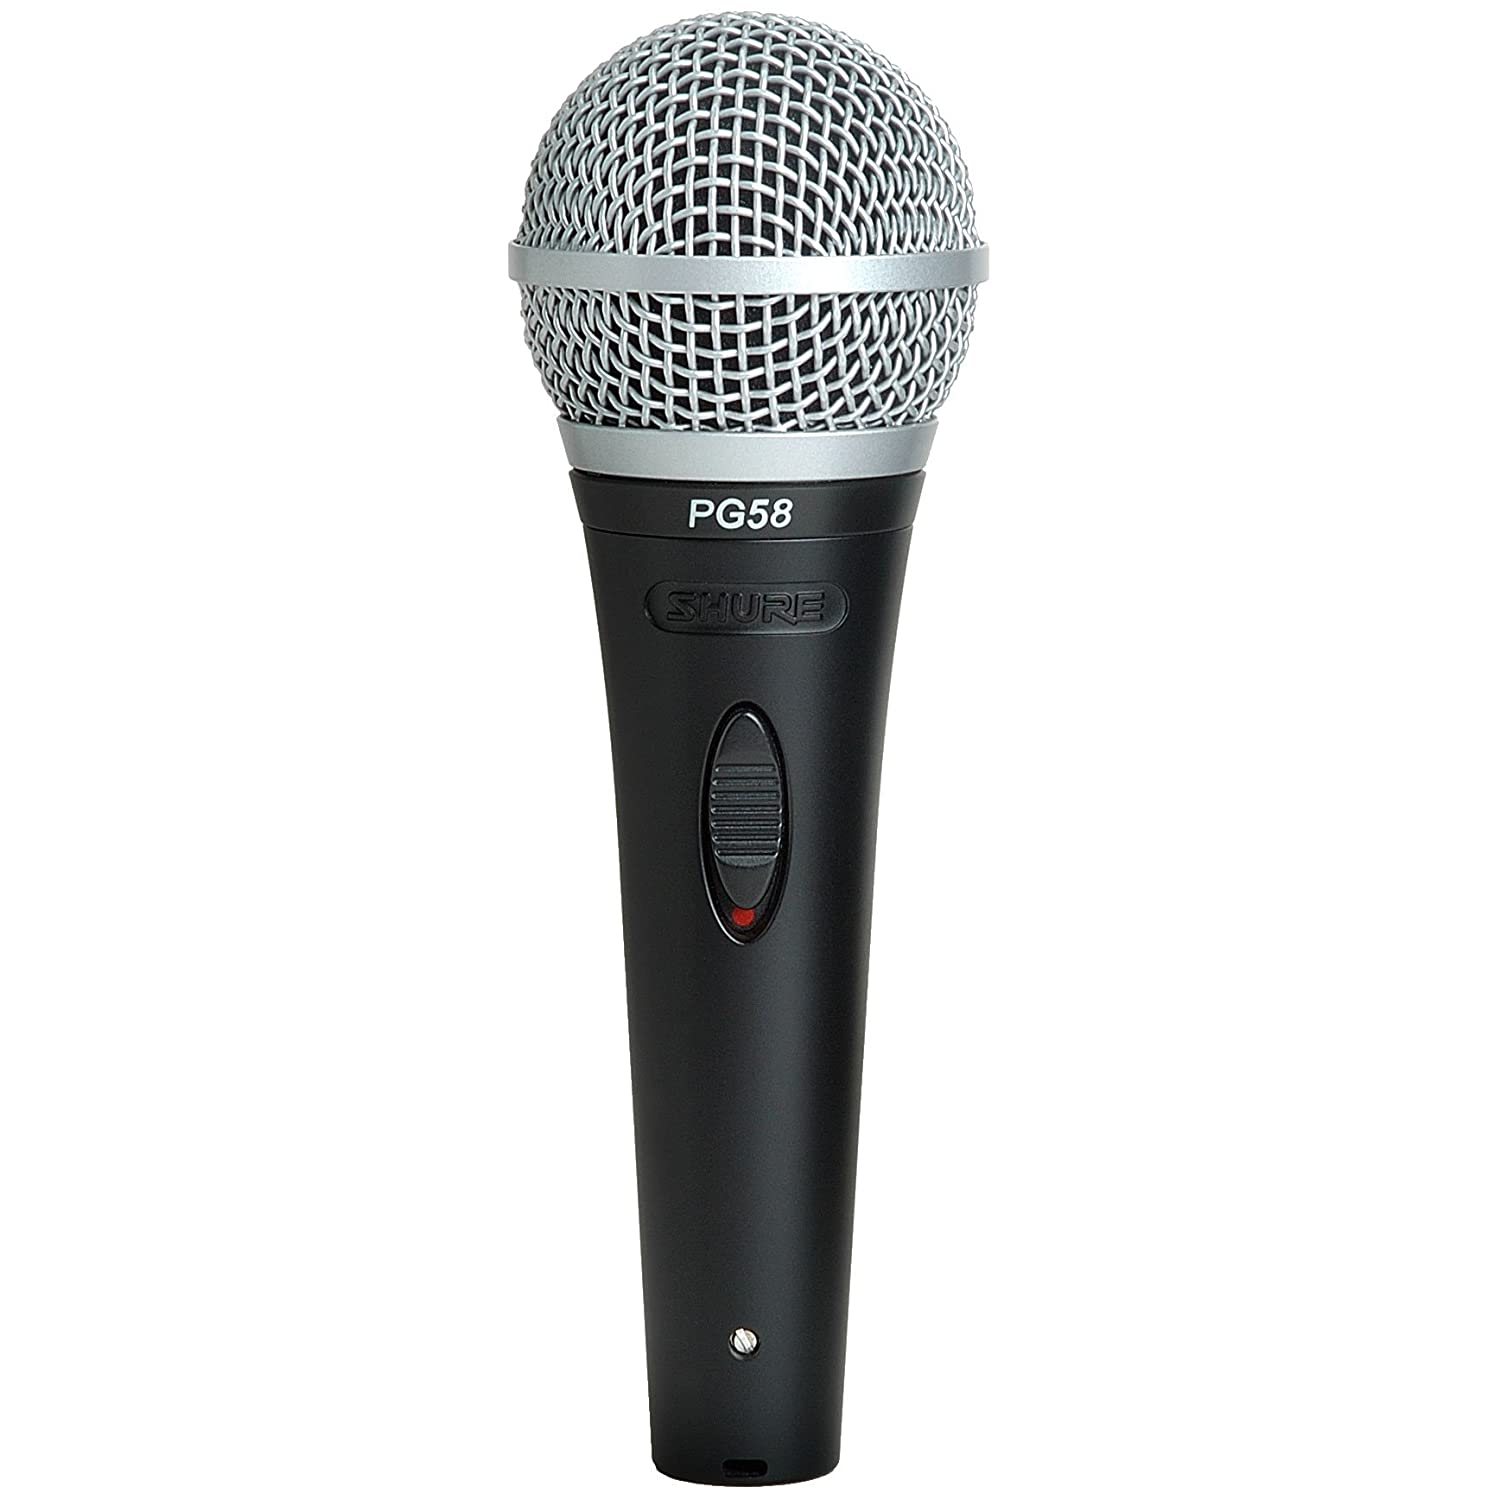 Shure PG58-XLR Cardioid Dynamic Vocal Microphone with XLR-to-XLR Cable Shure Incorporated